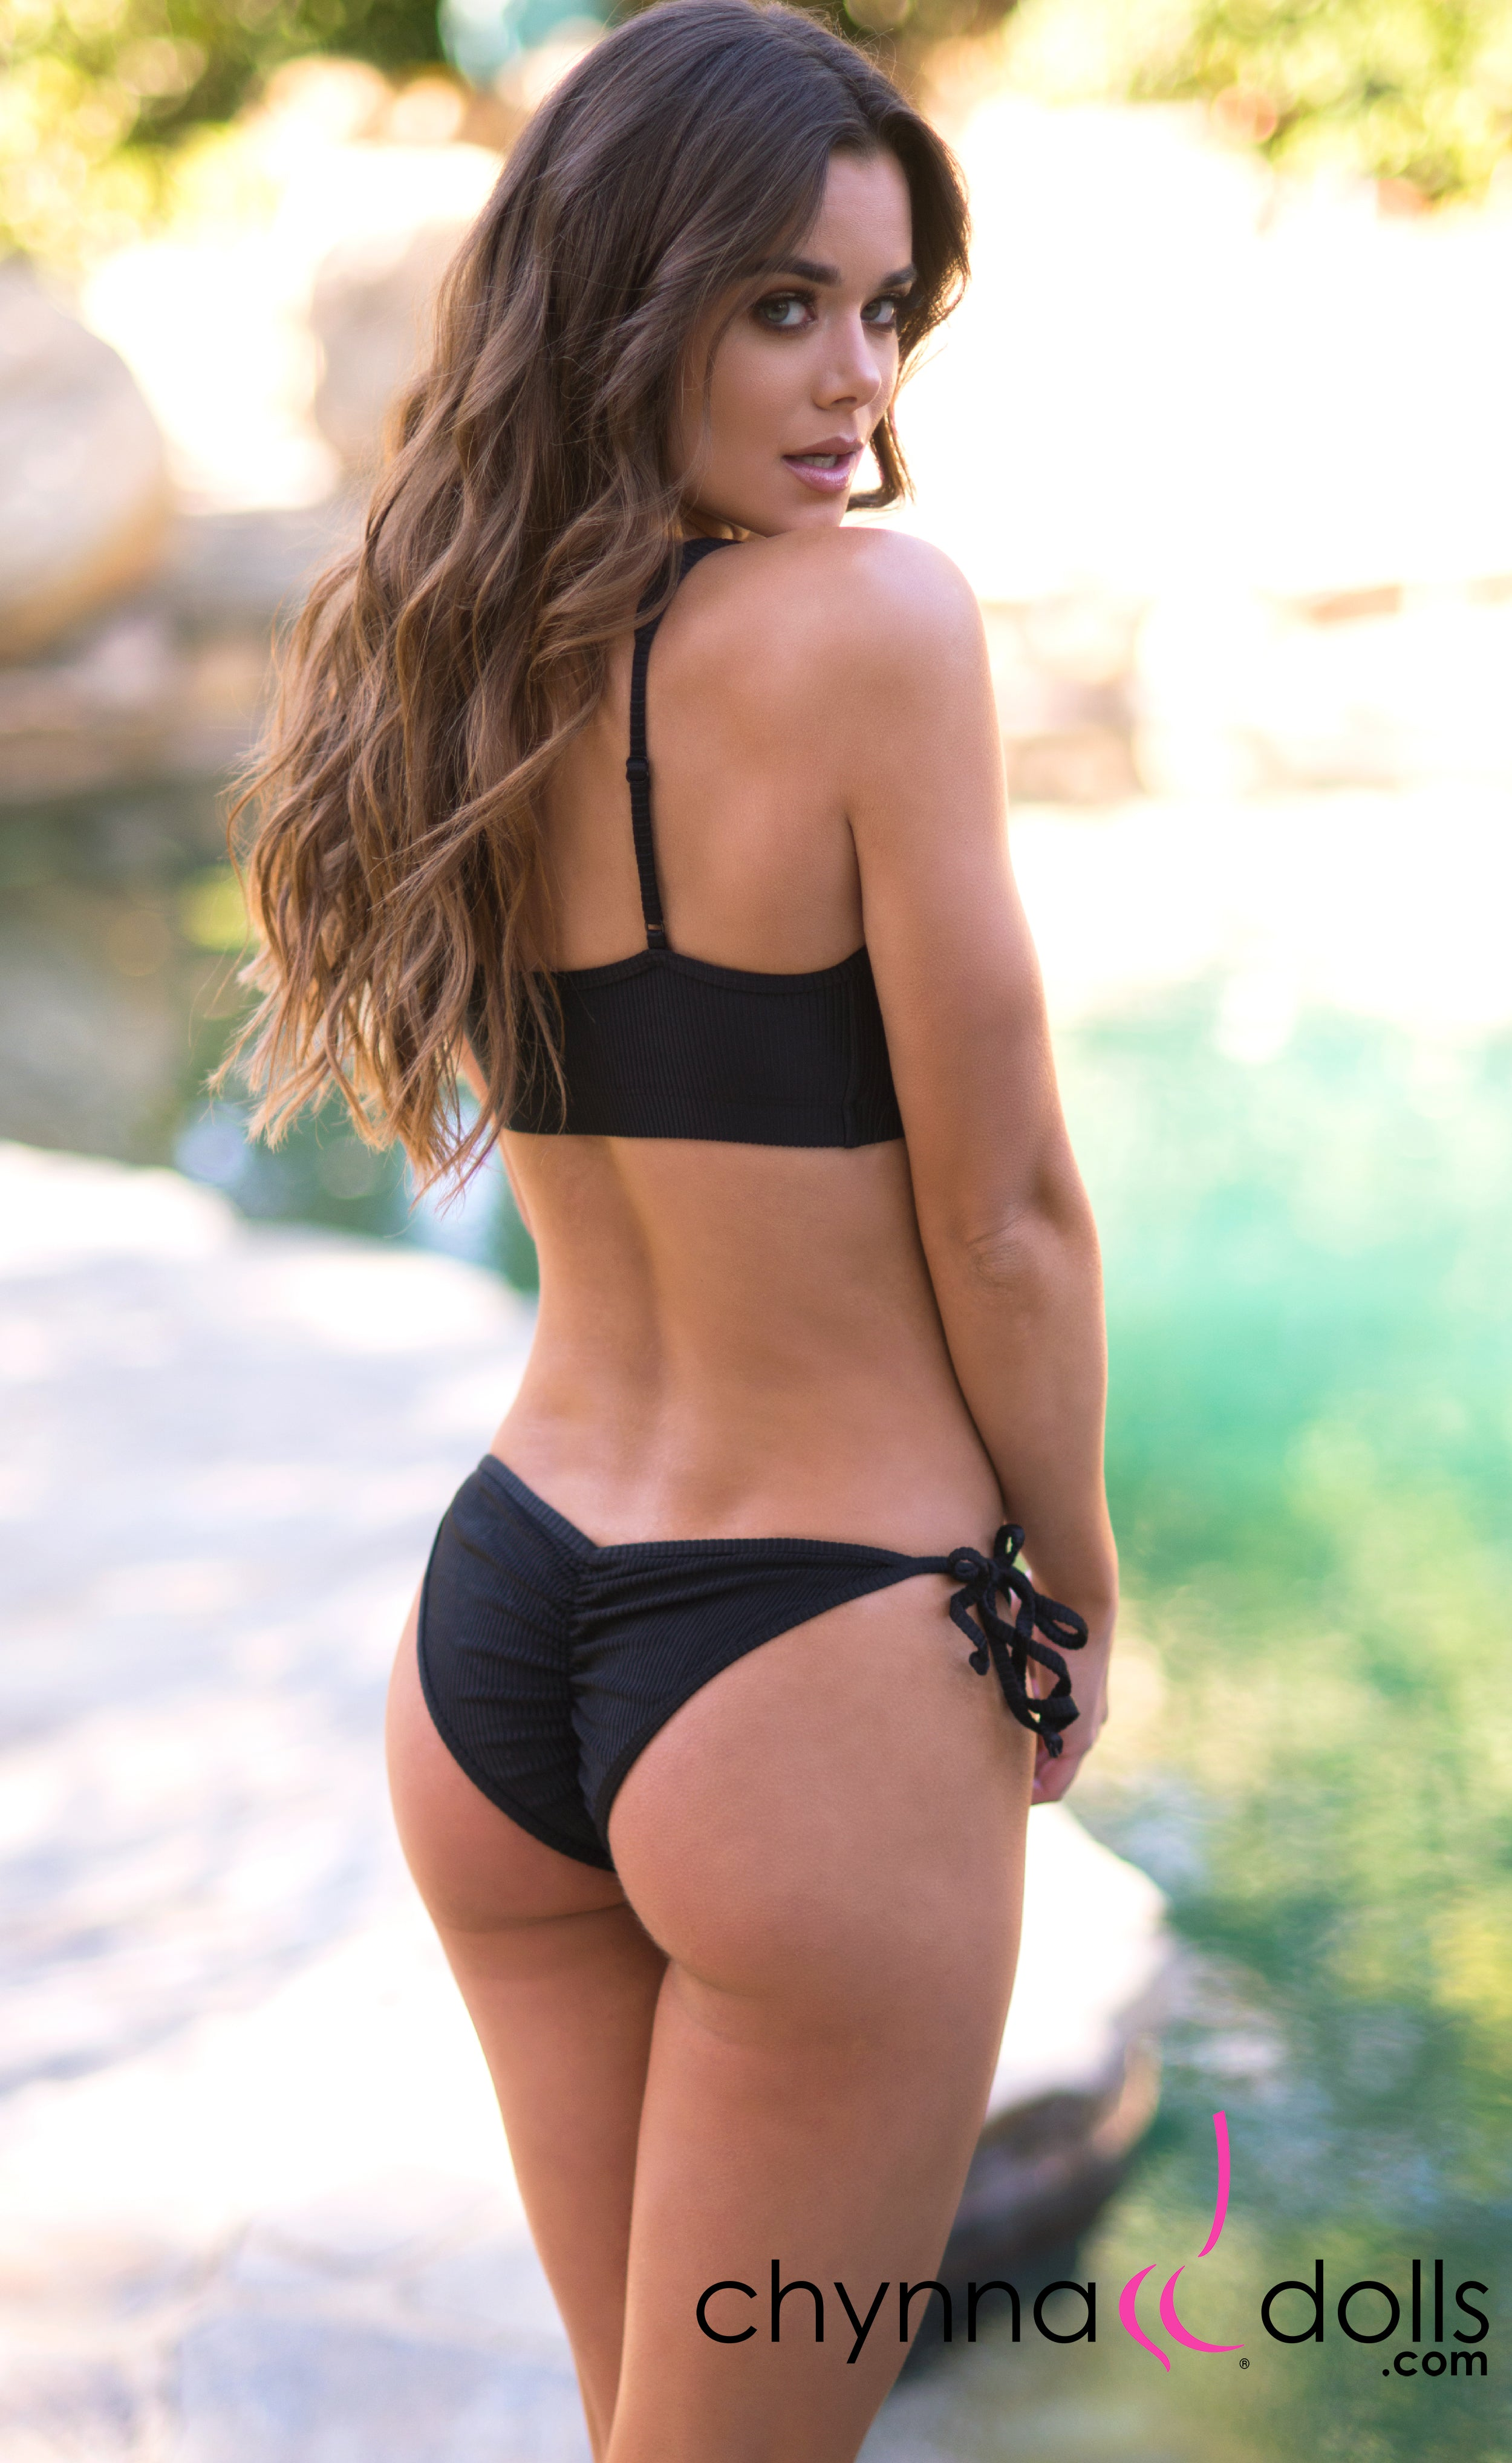 Lyon: Sporty Top Trendy Swimsuit w/ 2 Bottom option in Black Rib